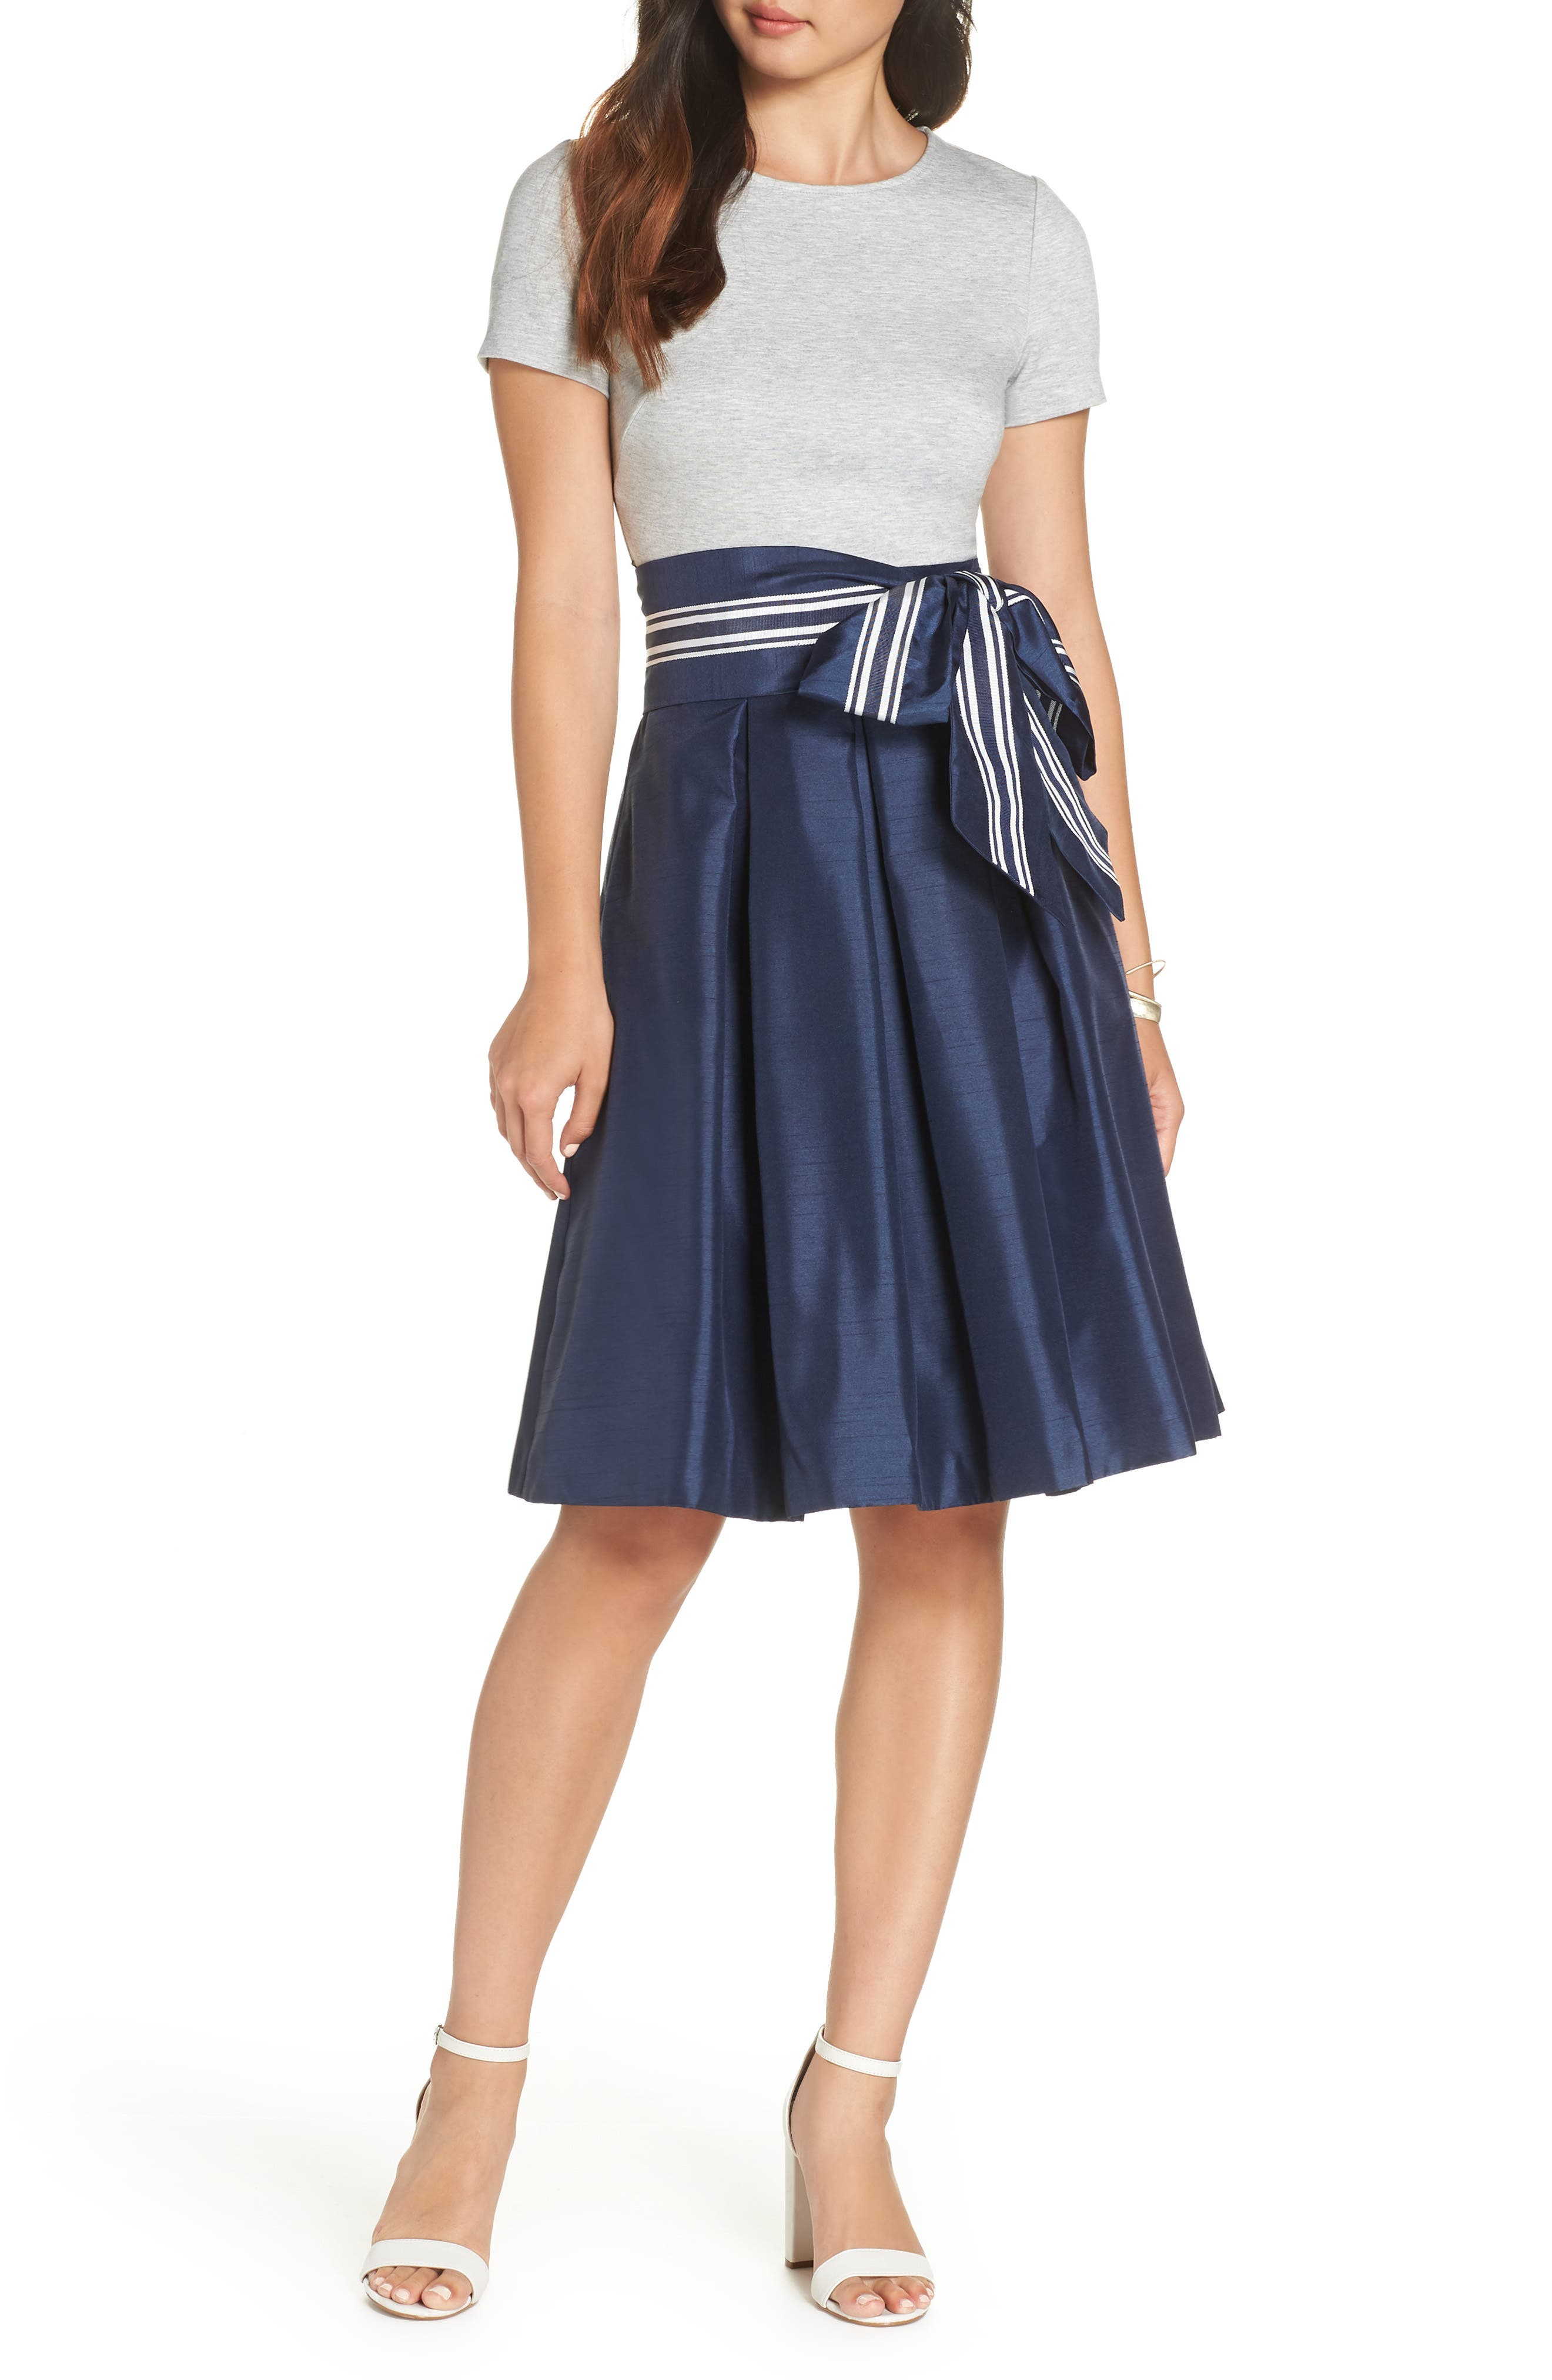 Mixed Media Dress,                             Main thumbnail 1, color,                             GREY- NAVY COLORBLOCK